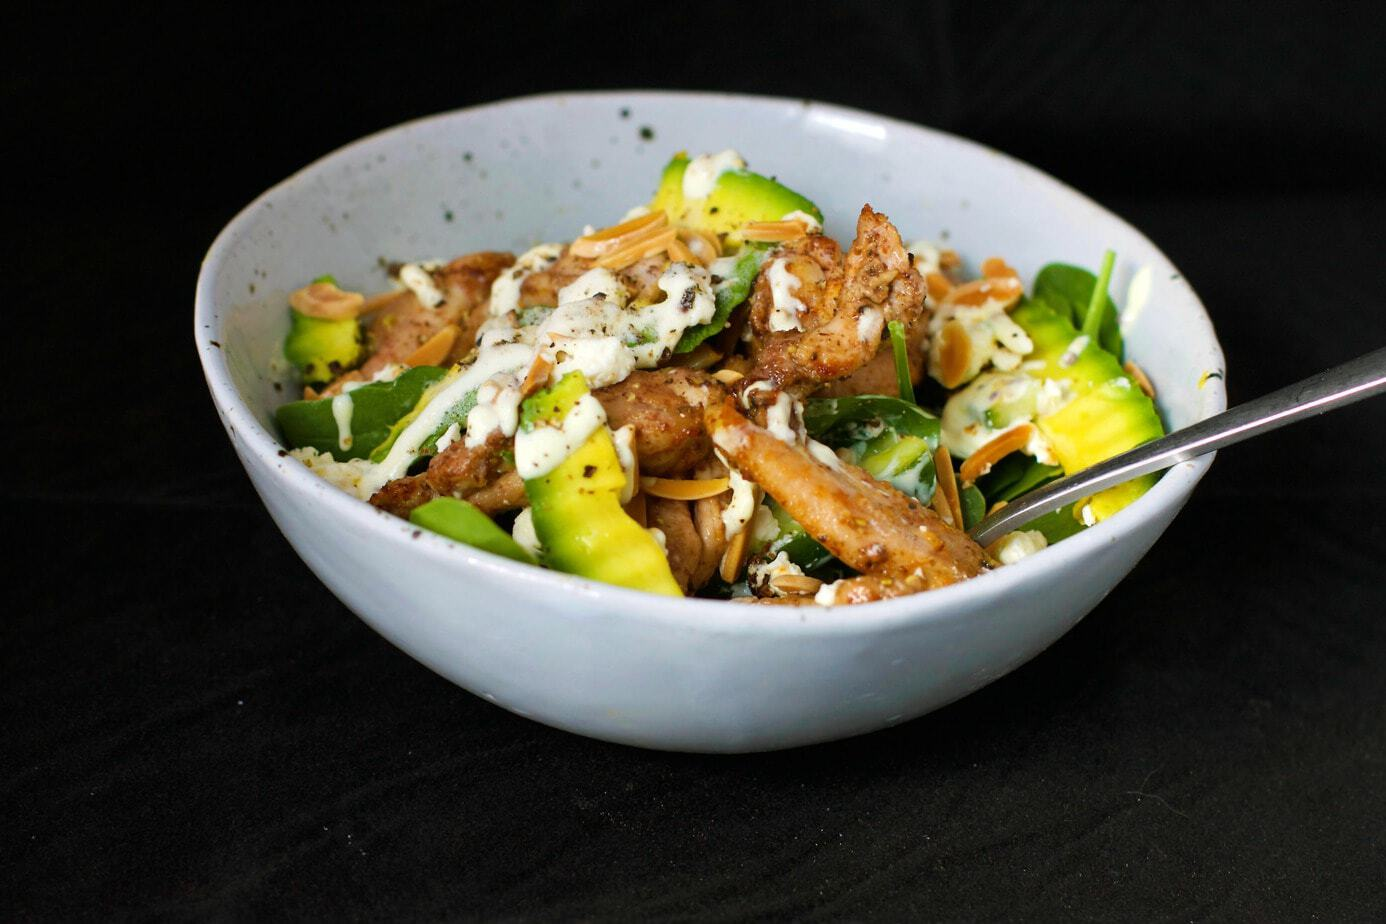 Chicken Avocado Almond Salad